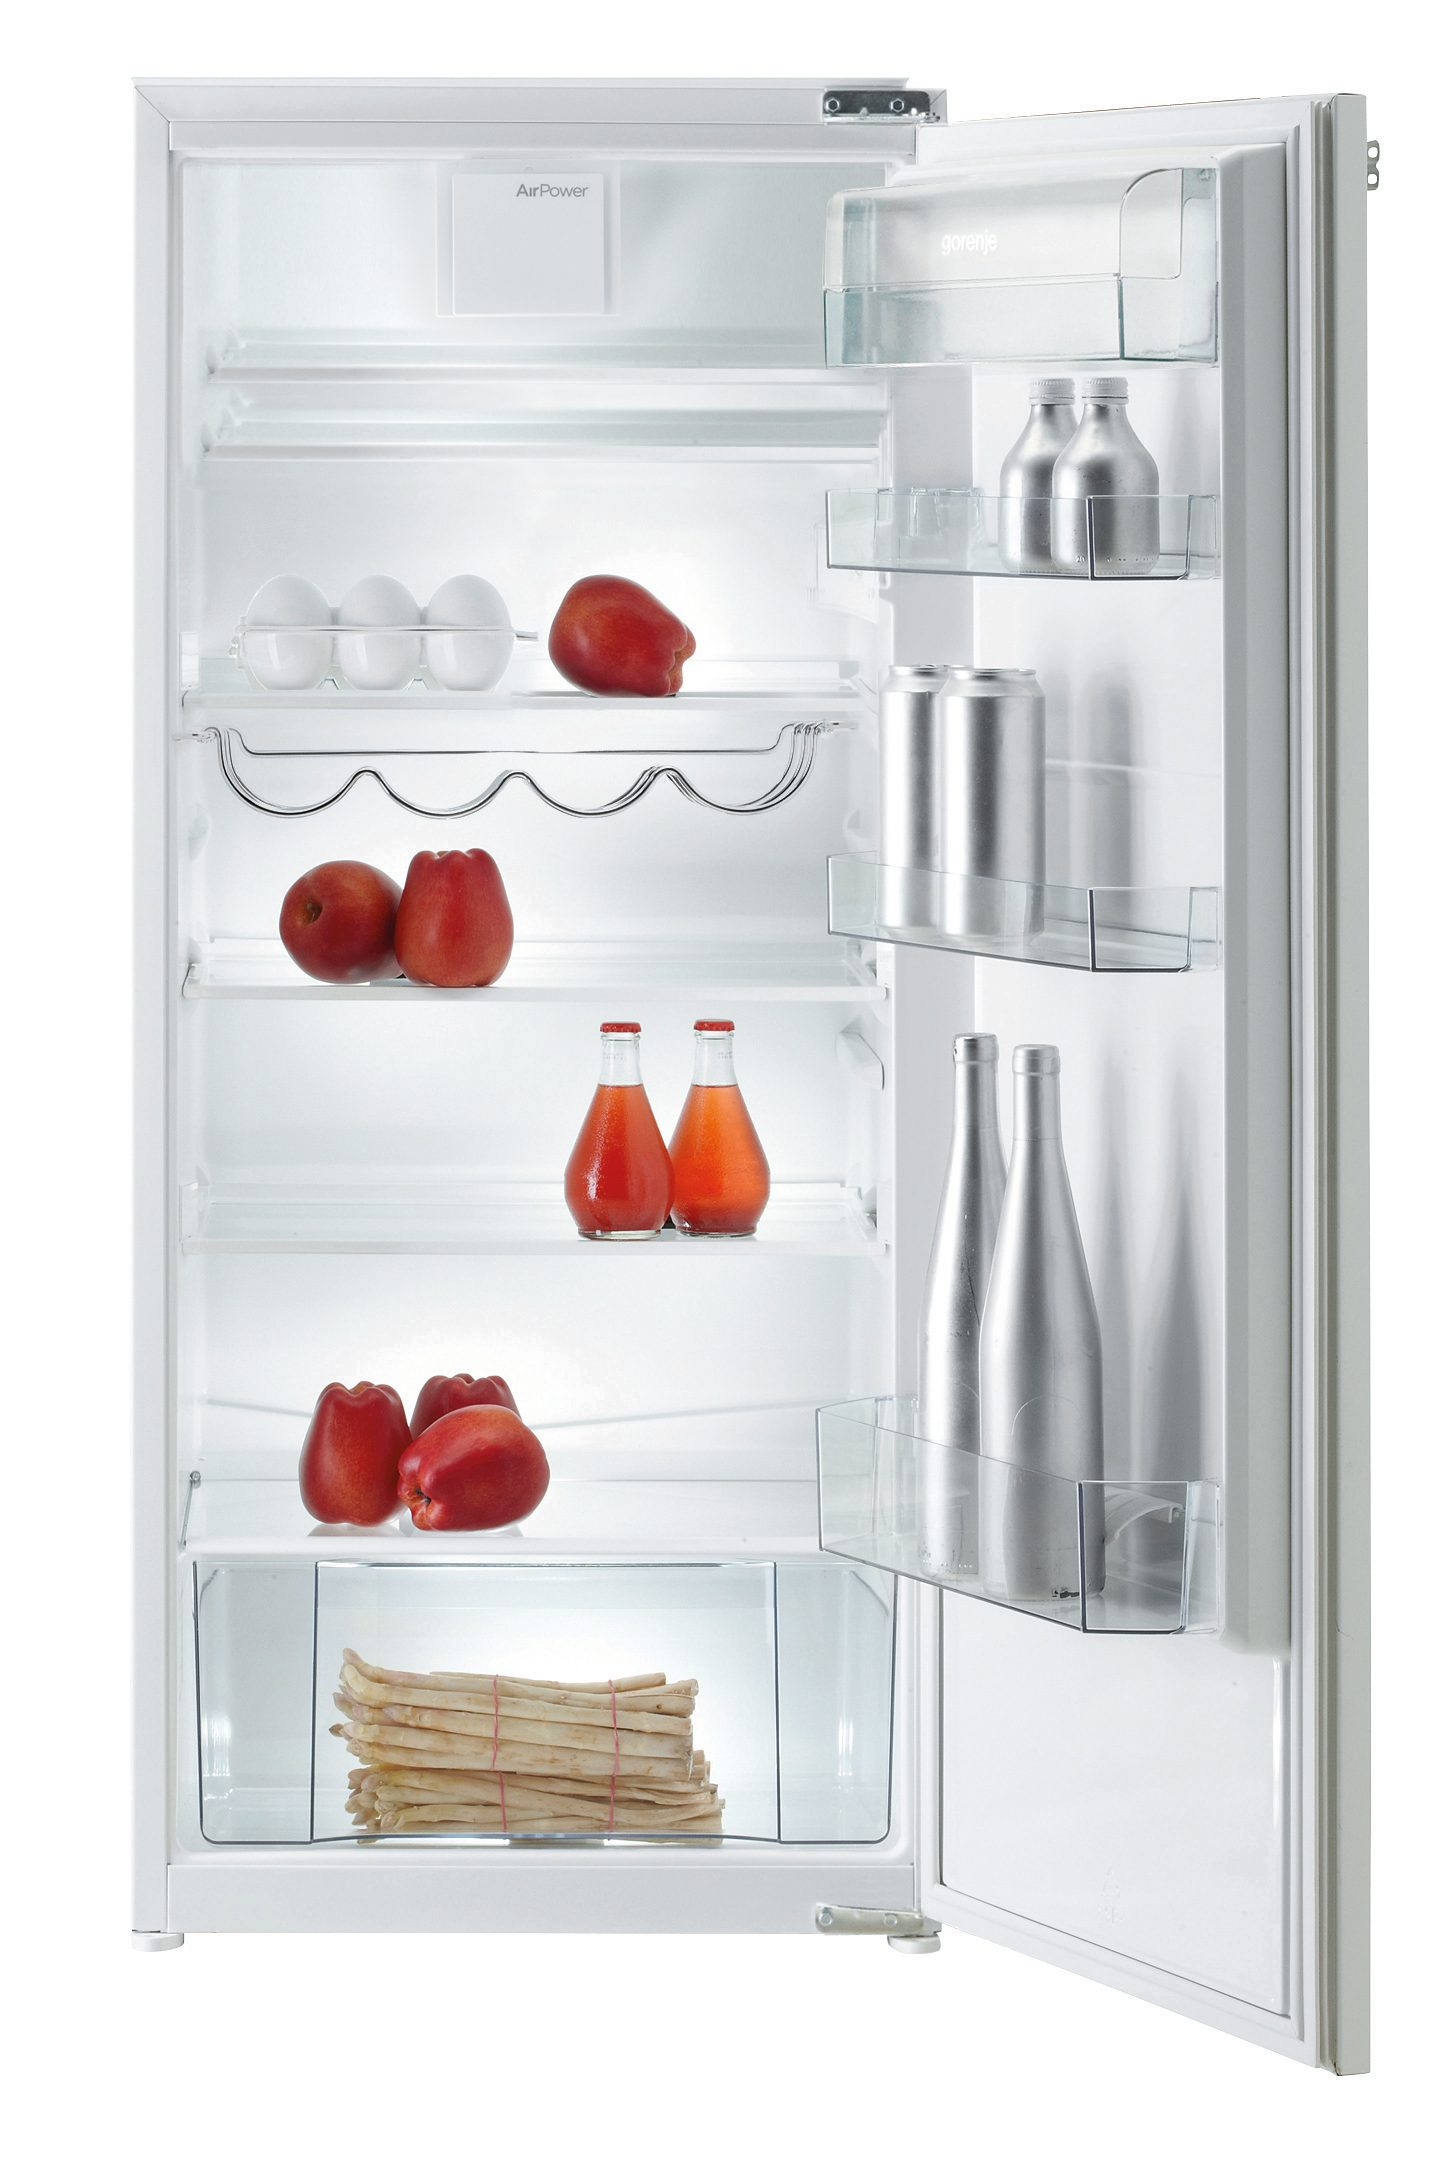 R frig rateur int grable 1 porte ri4121bw gorenje for Refrigerateur 1 porte